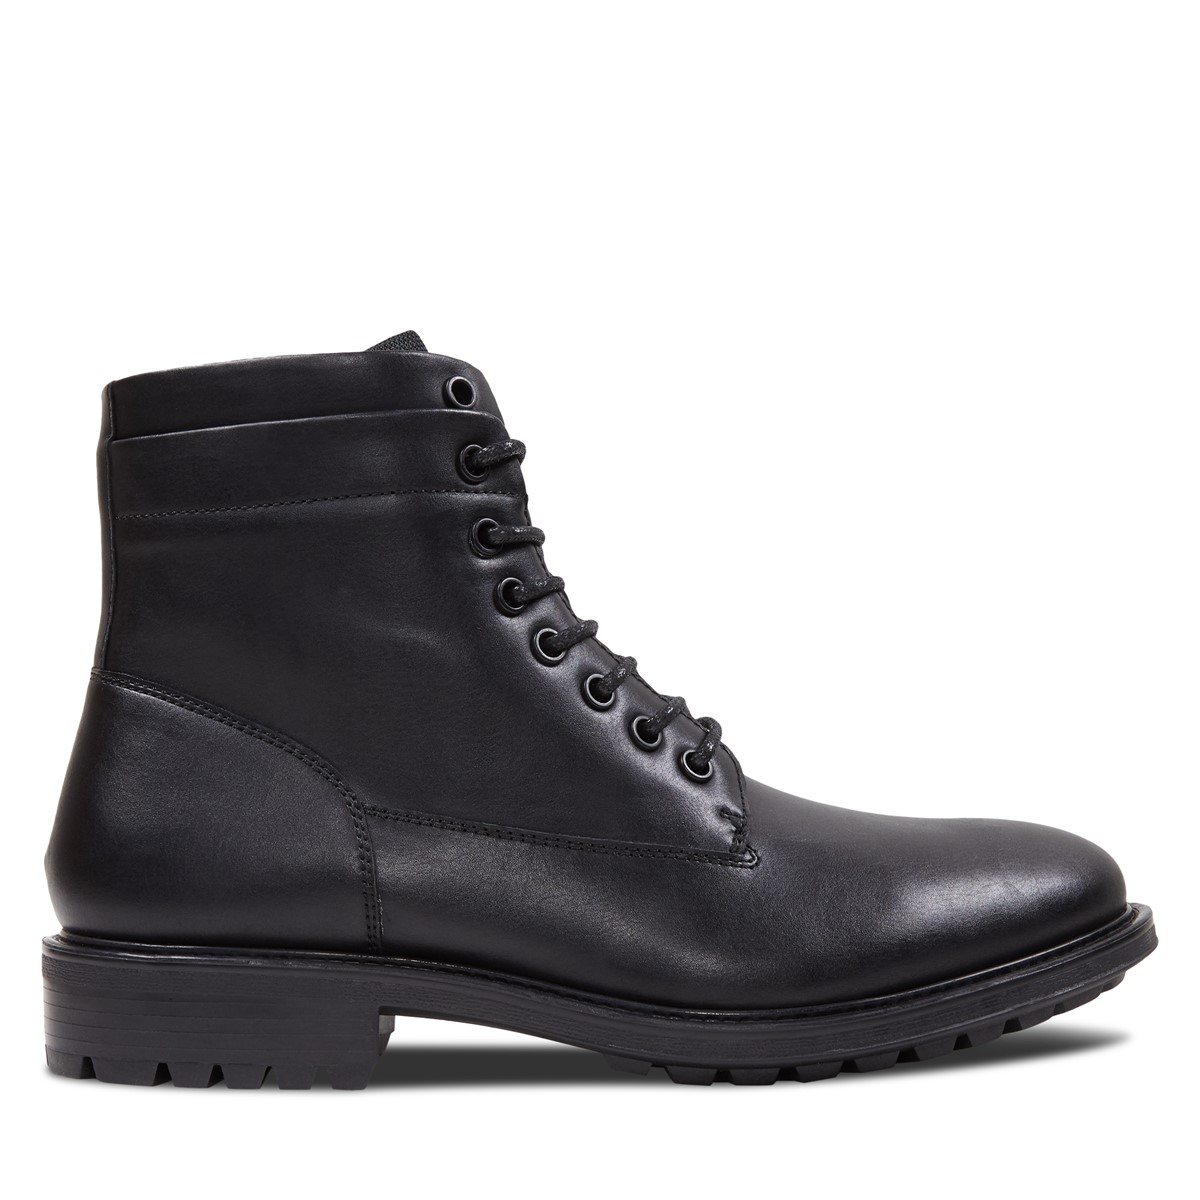 Men's Alex Lace-Up Boots in Black